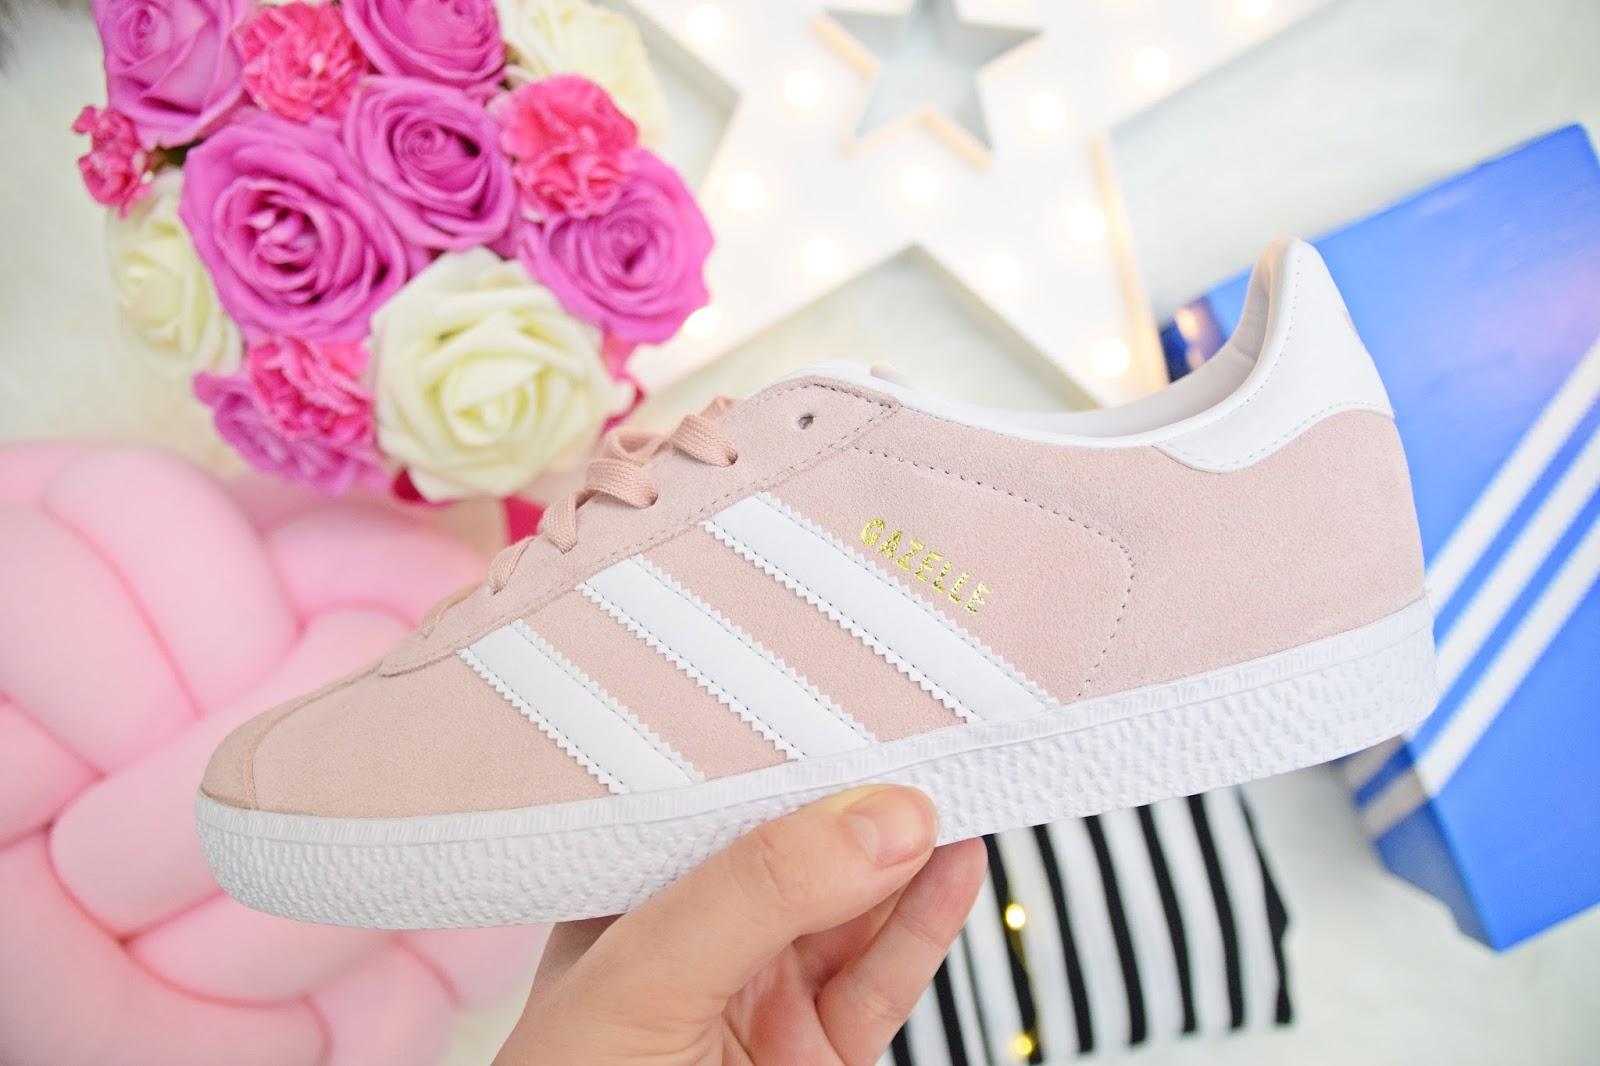 new design skate shoes amazing selection Footway Must - Have Buty Wiosenne Czyli Addias Gazelle ...